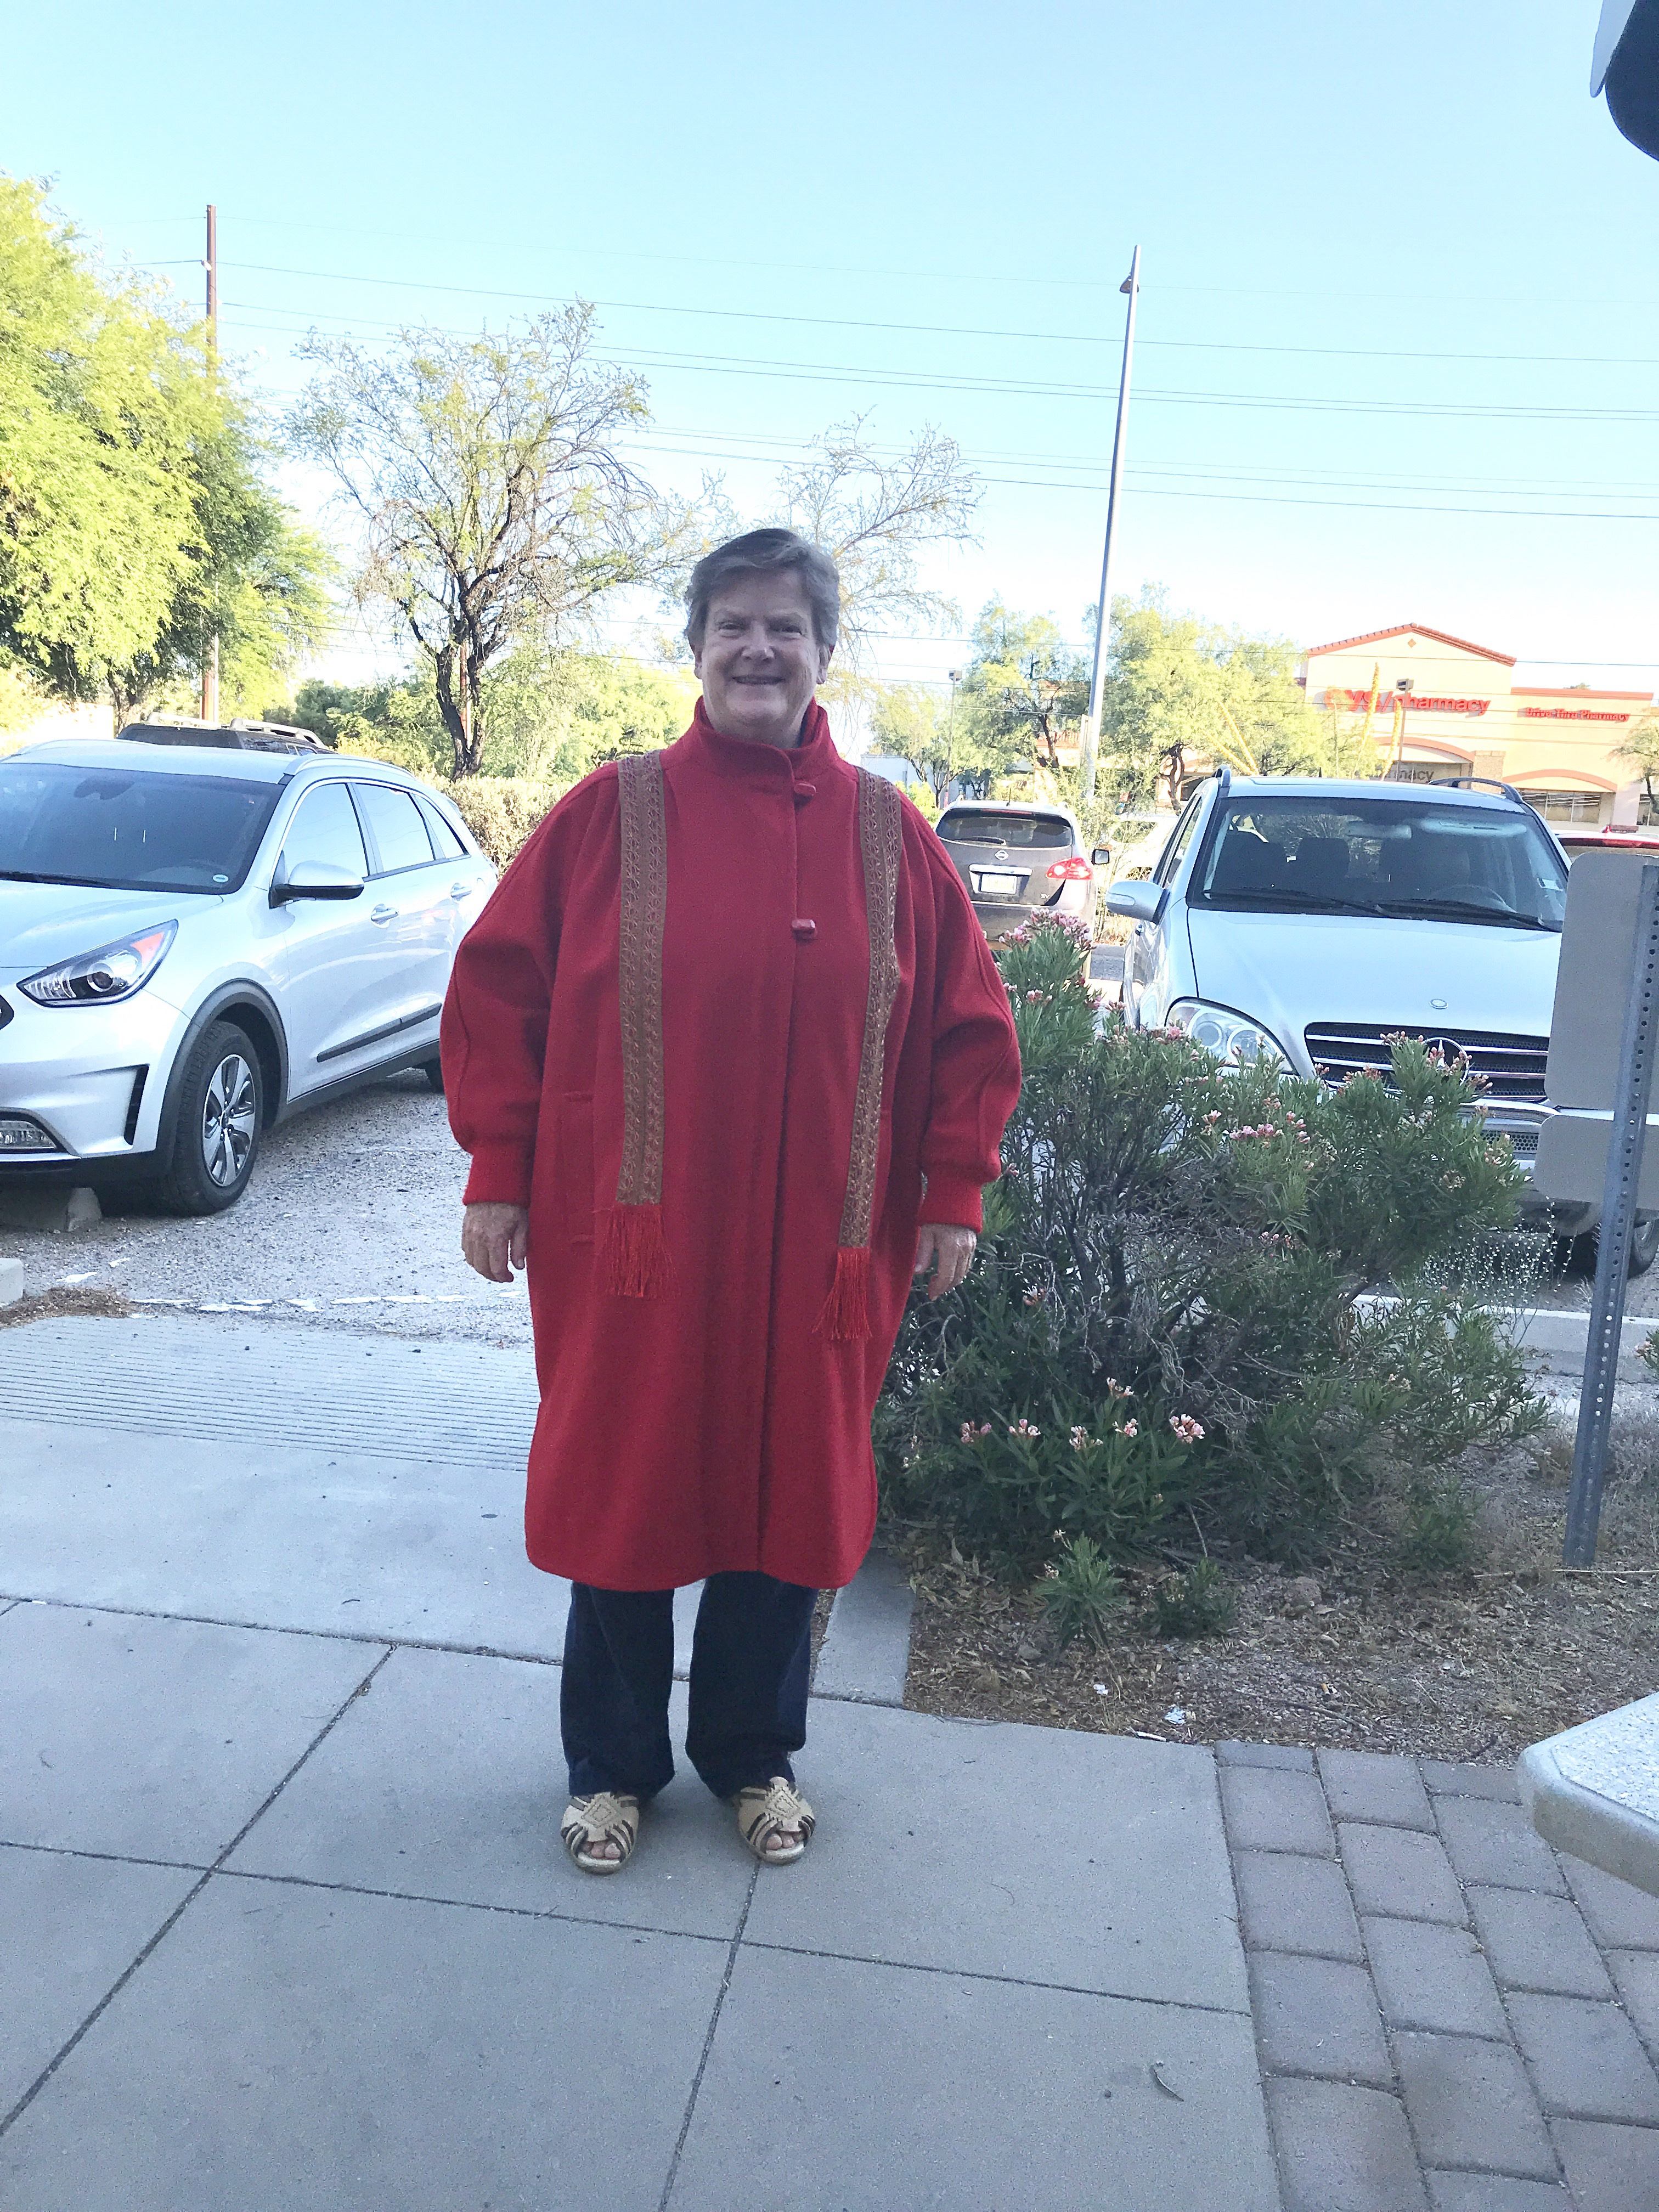 A woman stands in a parking lot wearing a long red woolen coat